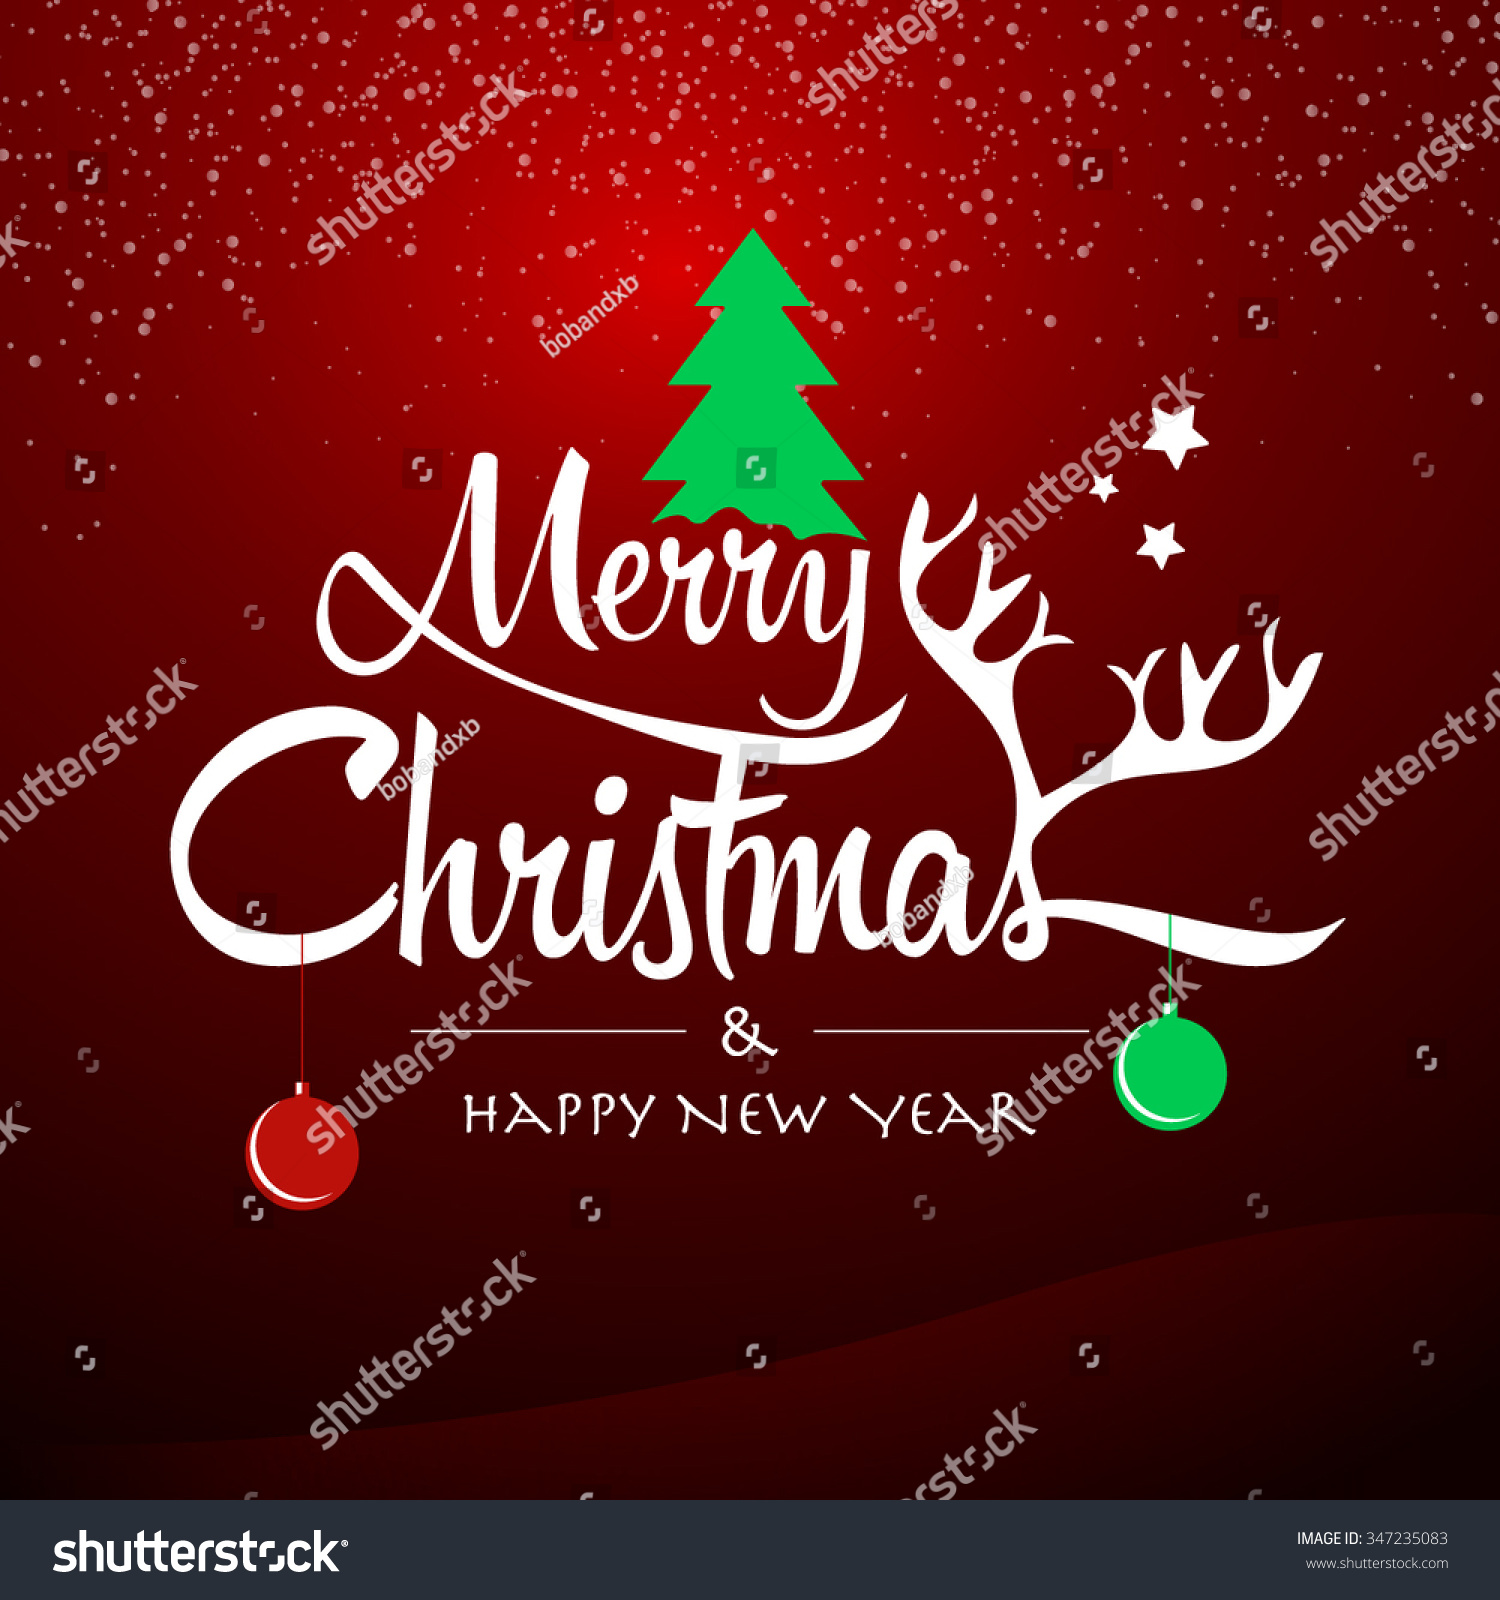 Merry Christmas Happy New Year Happy Stock Vector (Royalty Free ...